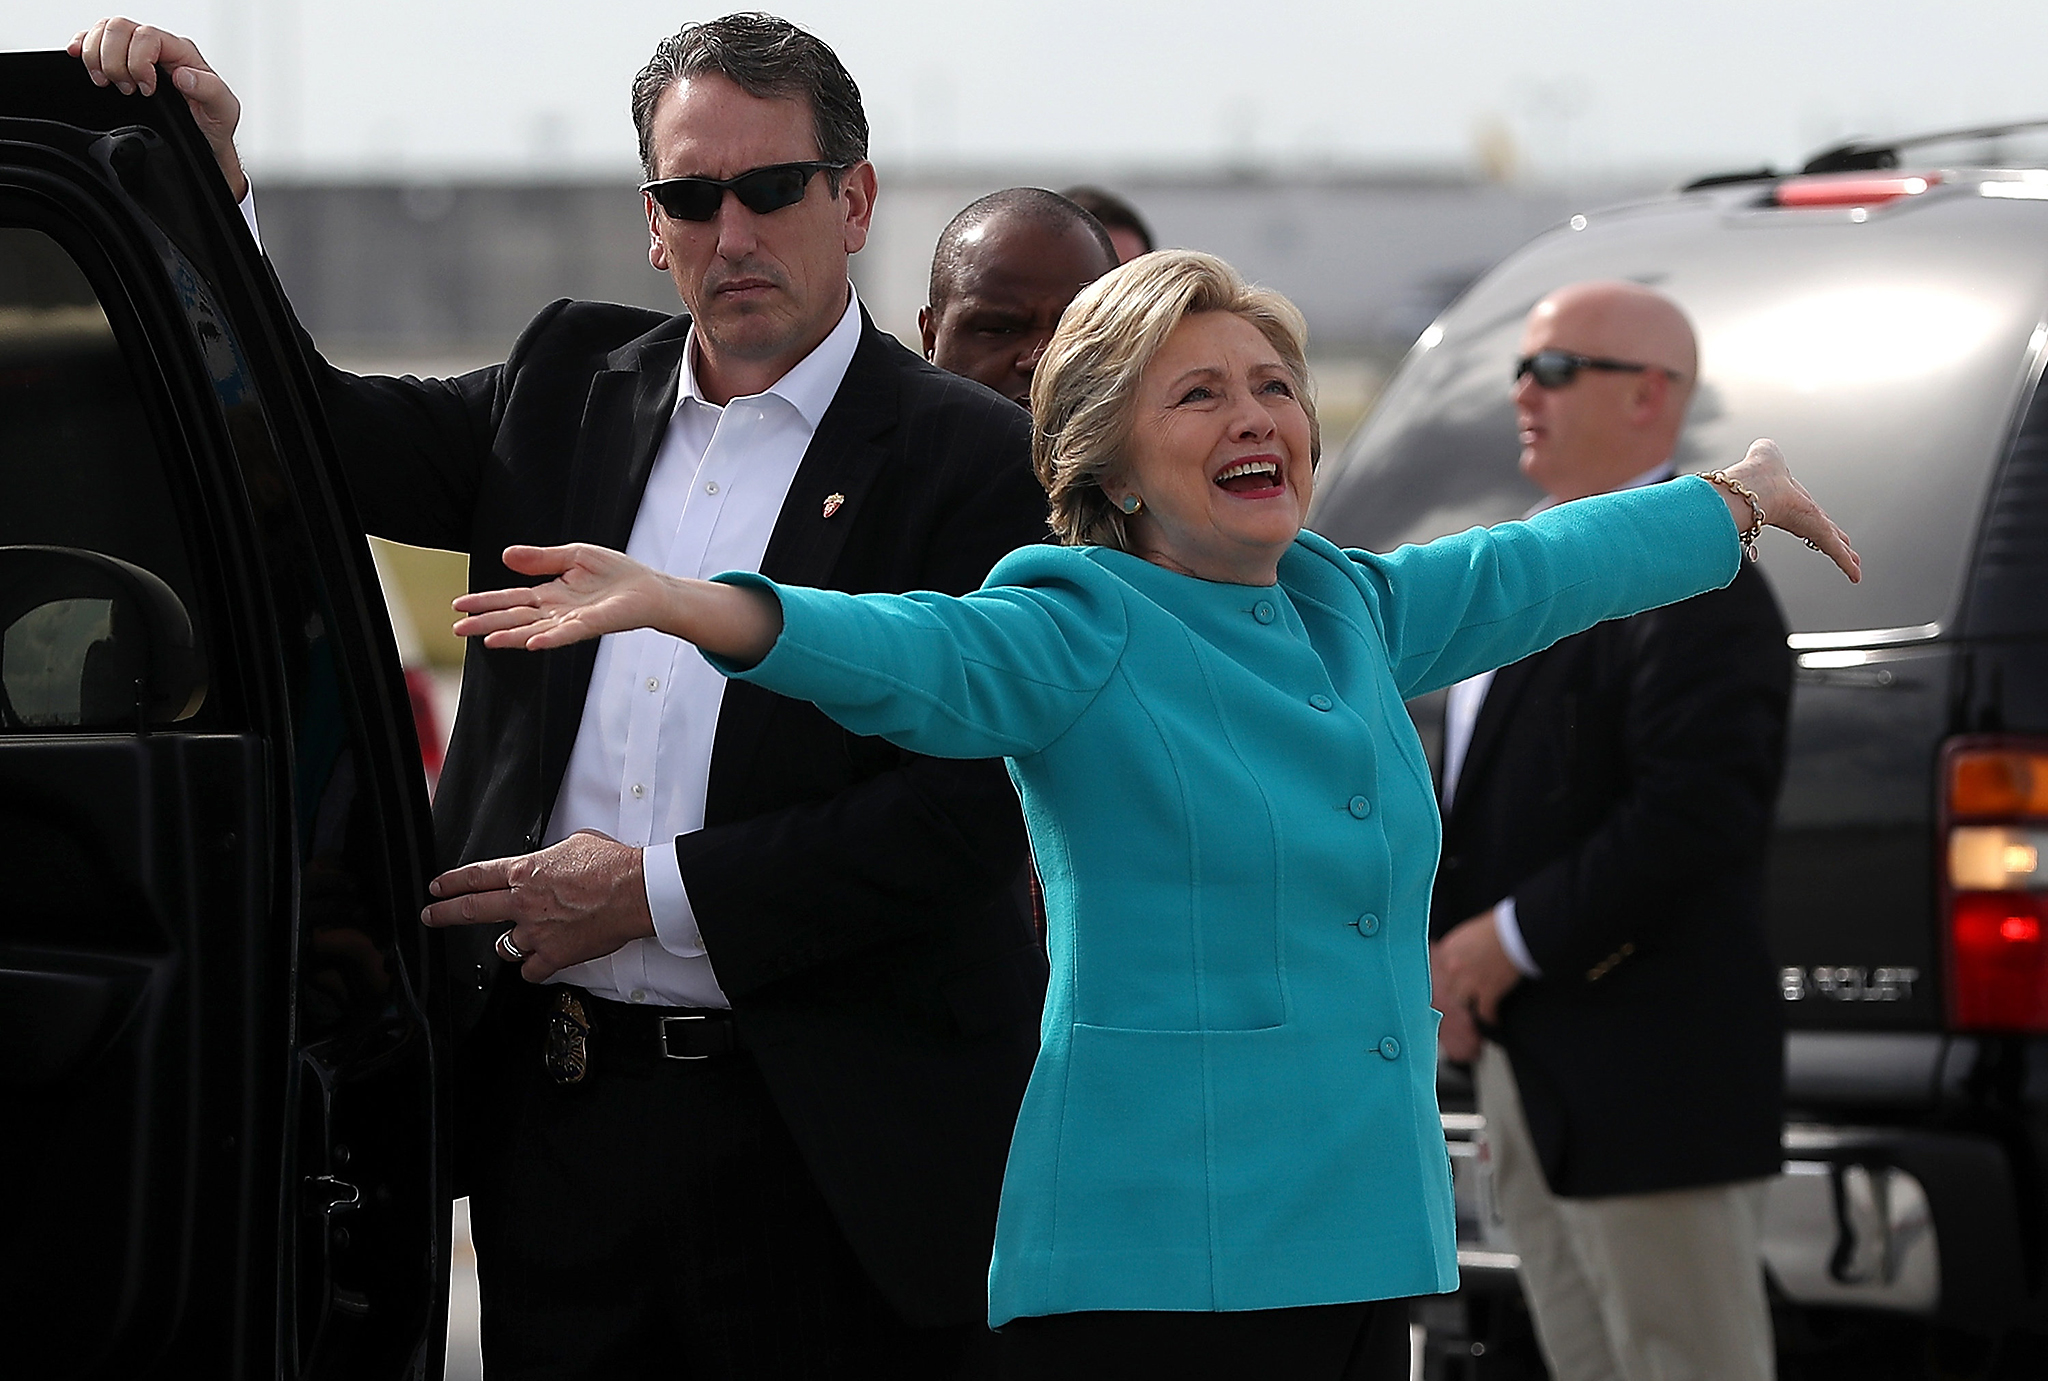 Democratic presidential nominee former Secretary of State Hillary Clinton prepares to board her campaign plane at Miami International Airport on October 26, 2016 in Miami, Florida. With less than two weeks to go until election day, Hillary Clinton is campaigning in Florida.  (Photo by Justin Sullivan/Getty Images)